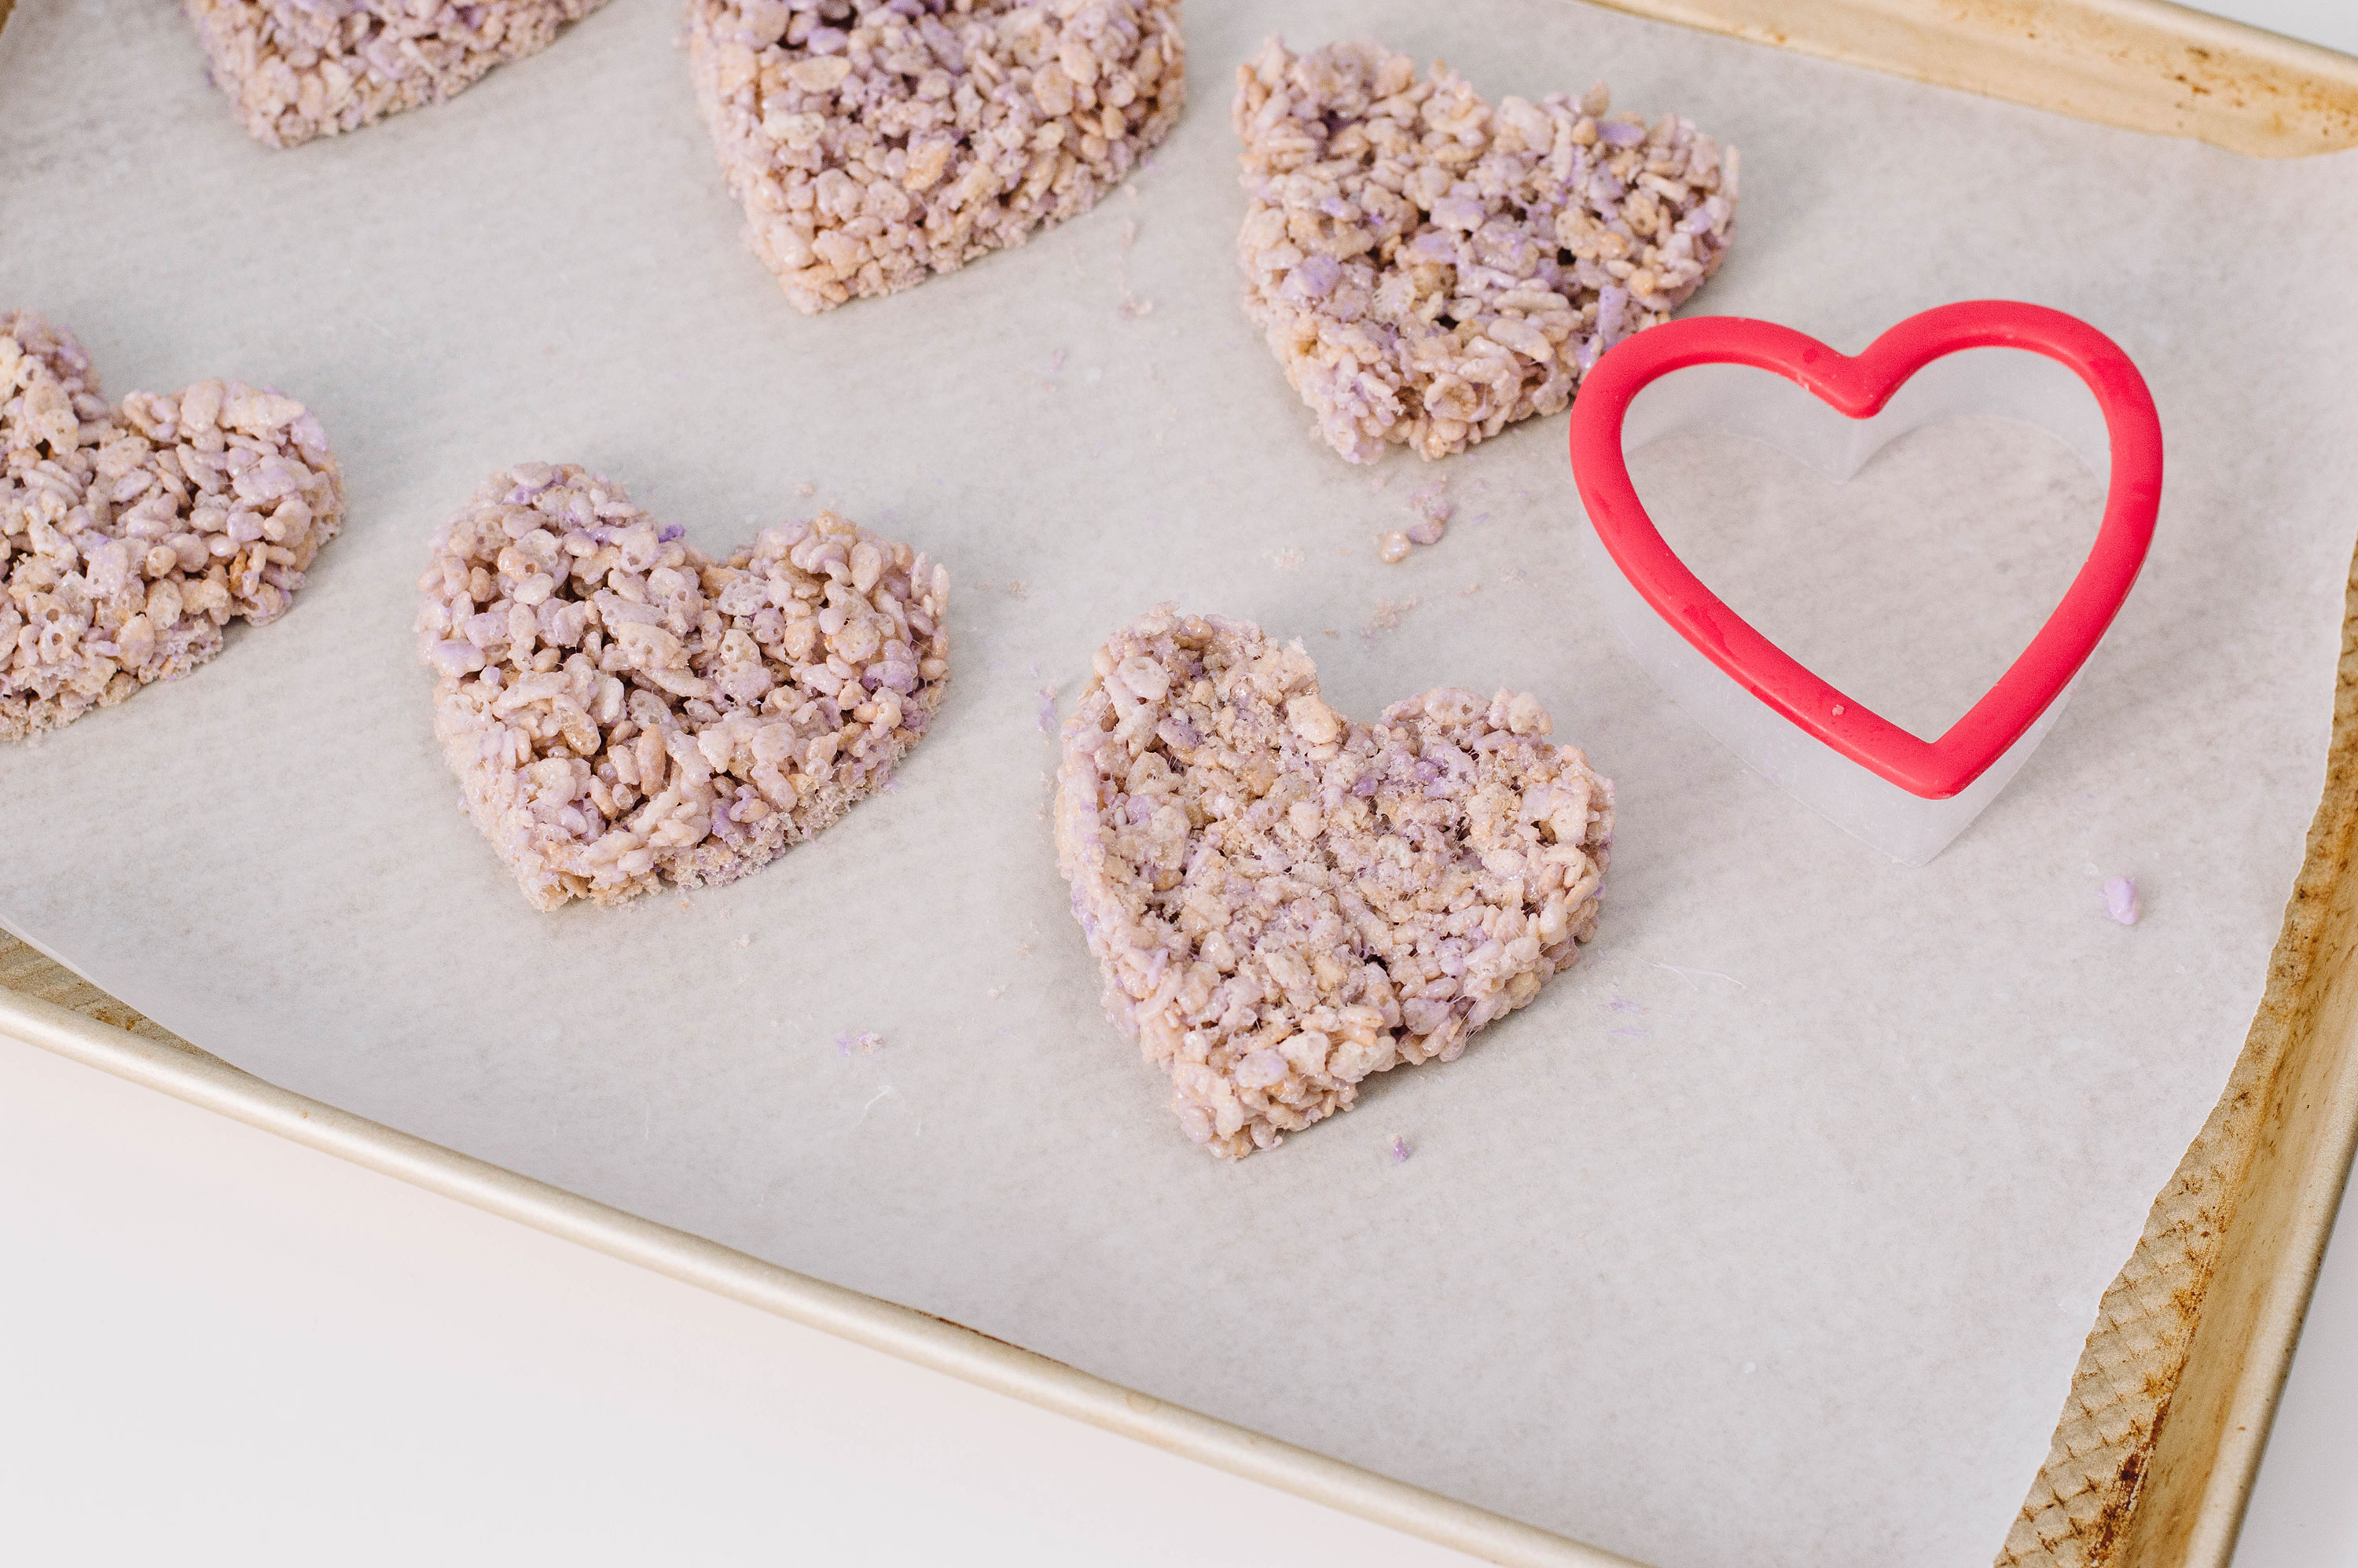 Chat with me this Valentine's Day: here are rice cereal treats dedicated to our favourite conversation hearts.